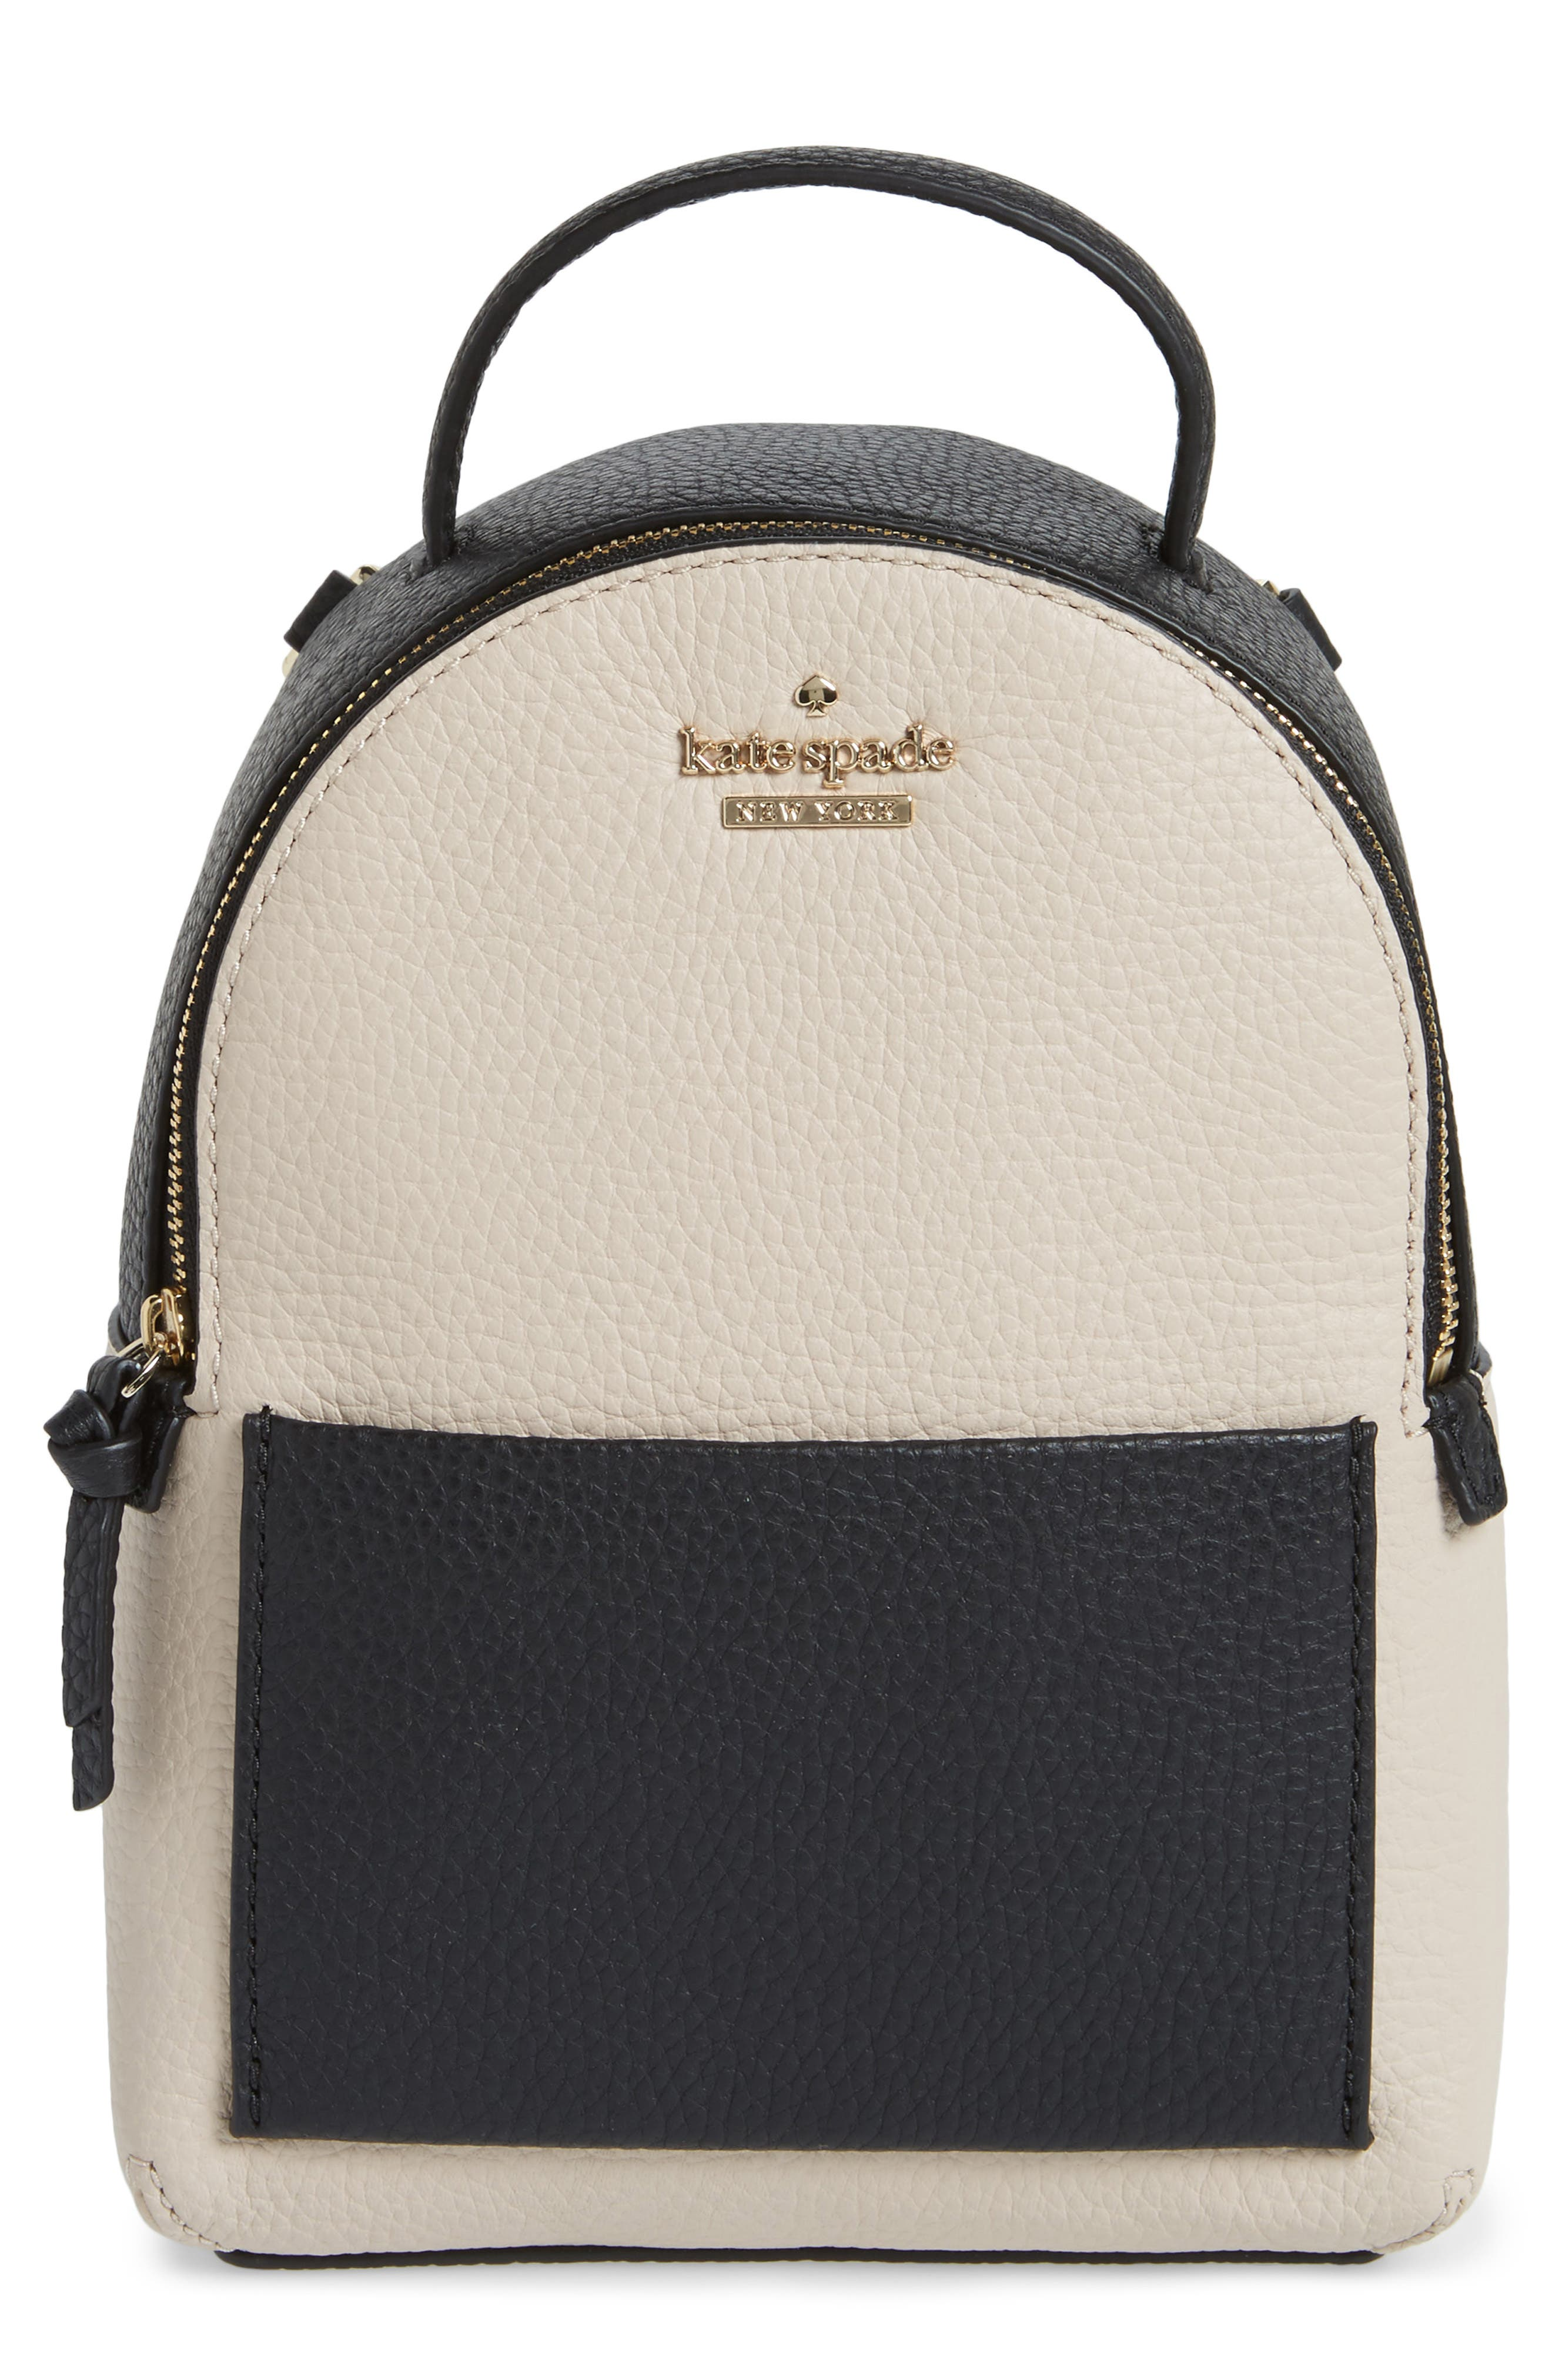 jackson street merry convertible leather backpack,                         Main,                         color, Black/ Soft Porcelain